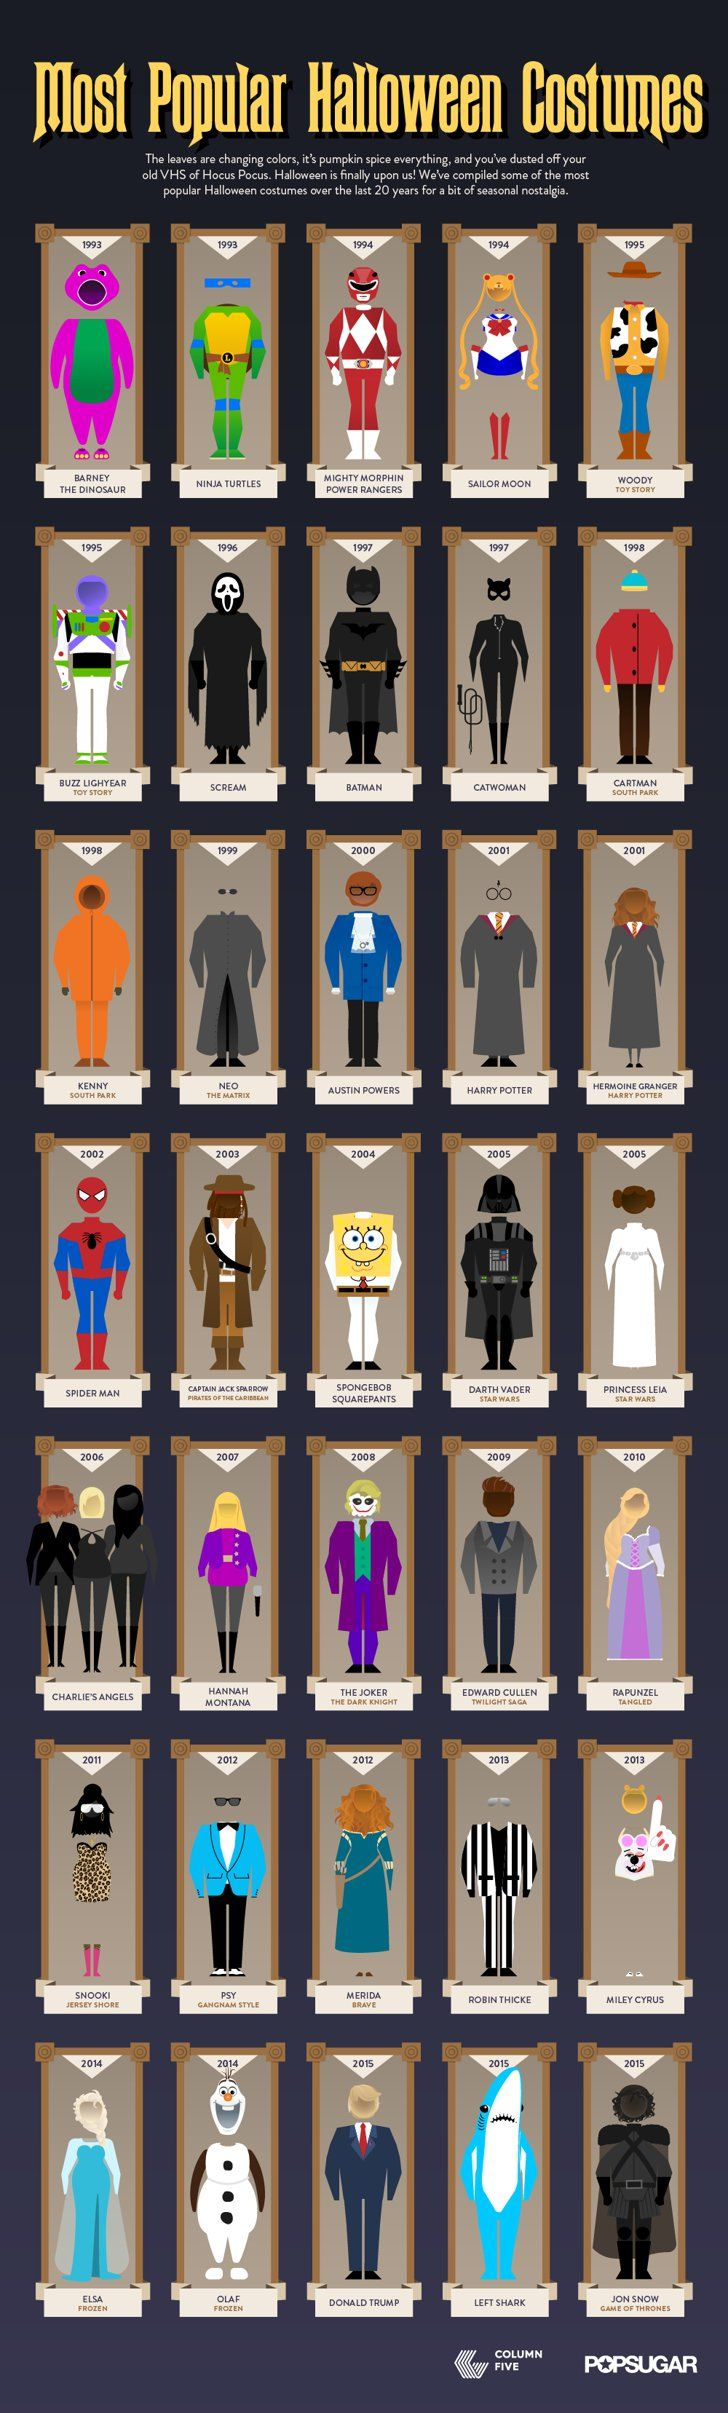 Pin for Later: See the 28 Most Popular Halloween Costumes by Year in This Cool Infographic